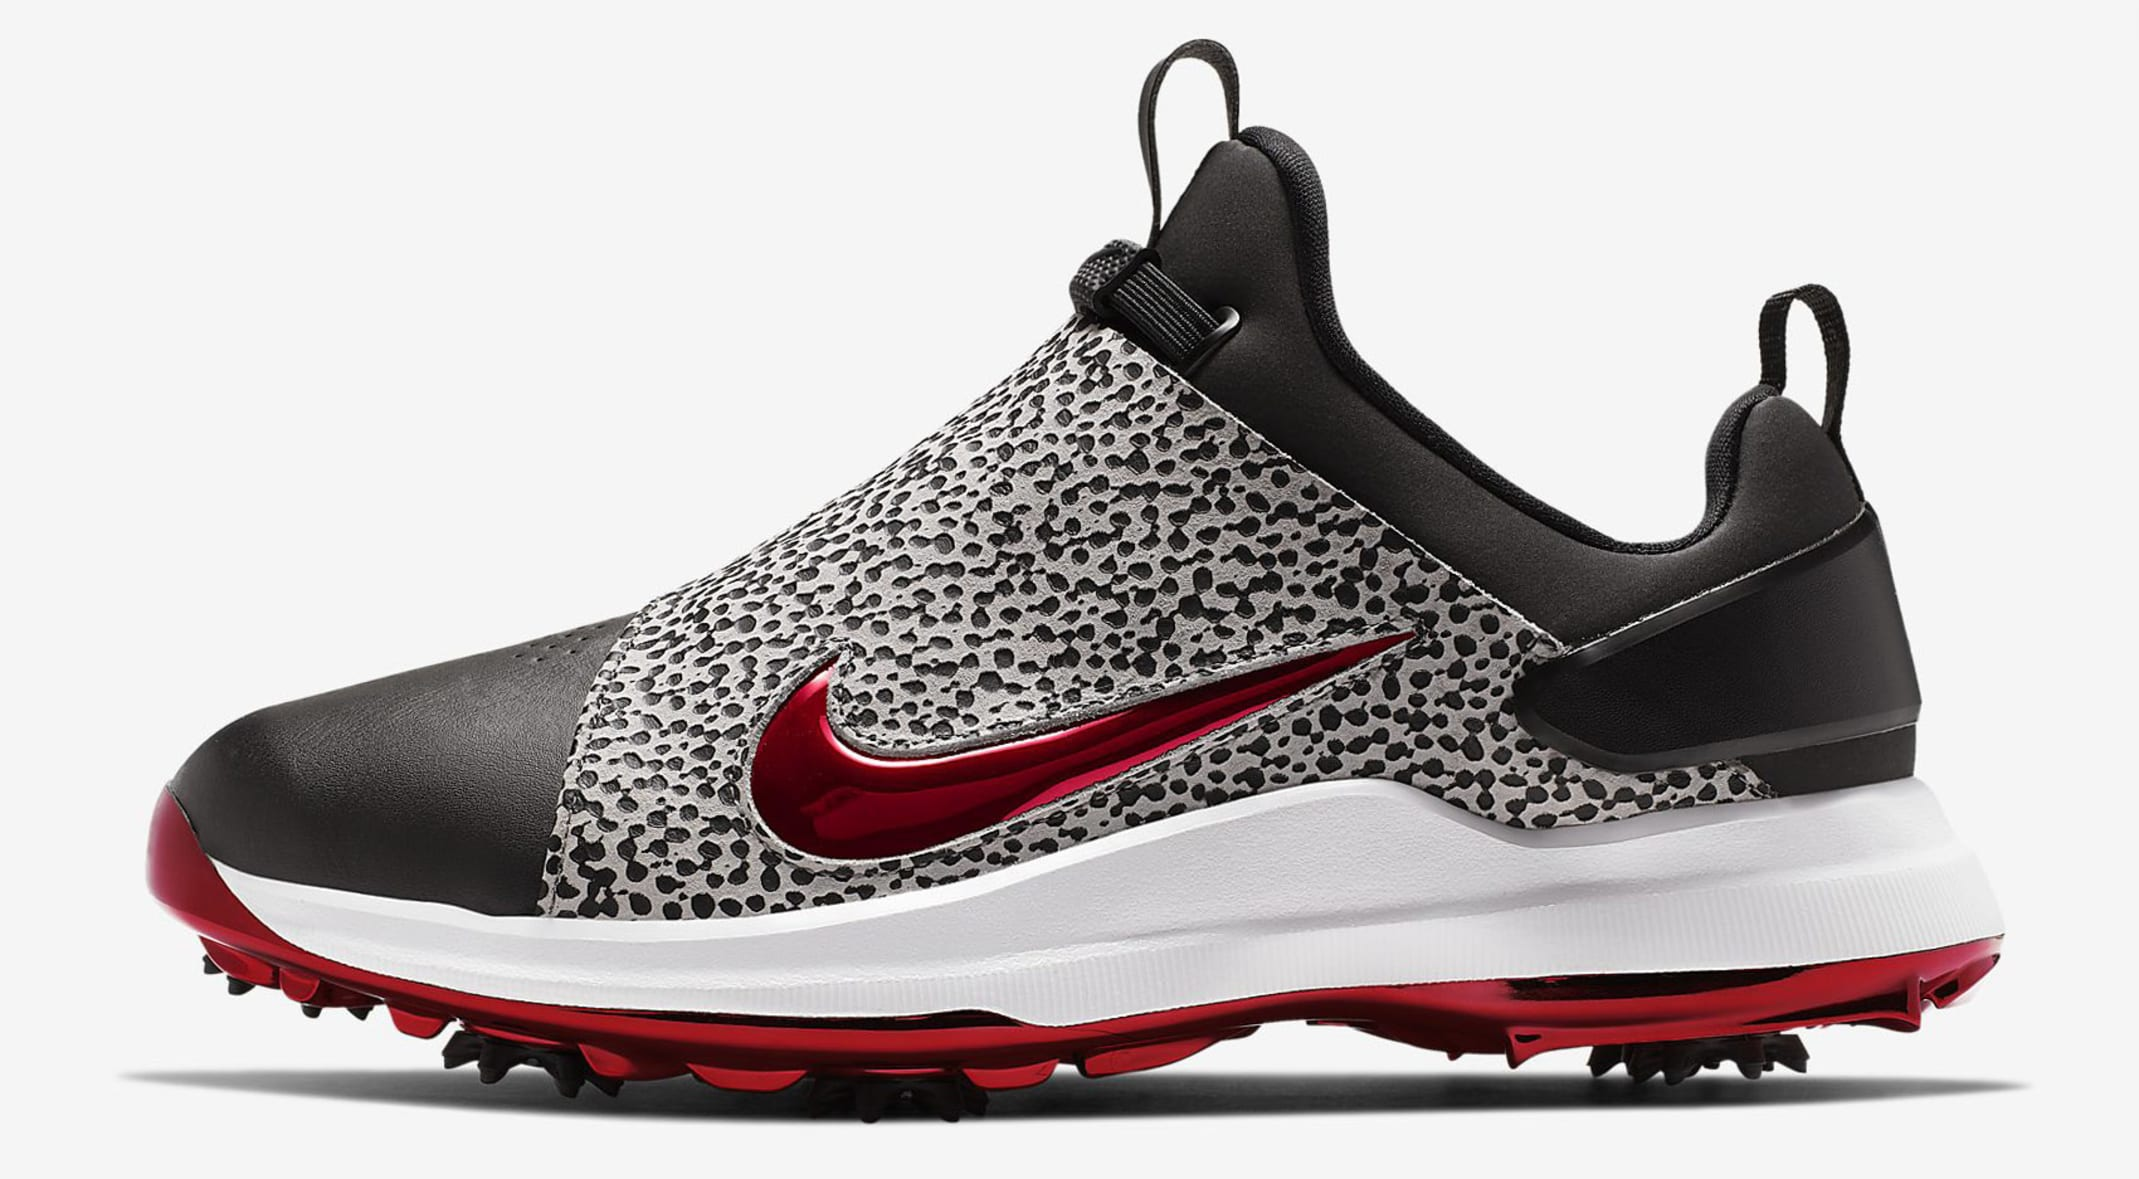 cccaca5c Defending champion Brooks Koepka will lace it up in Nike shoes inspired by  New York's concrete